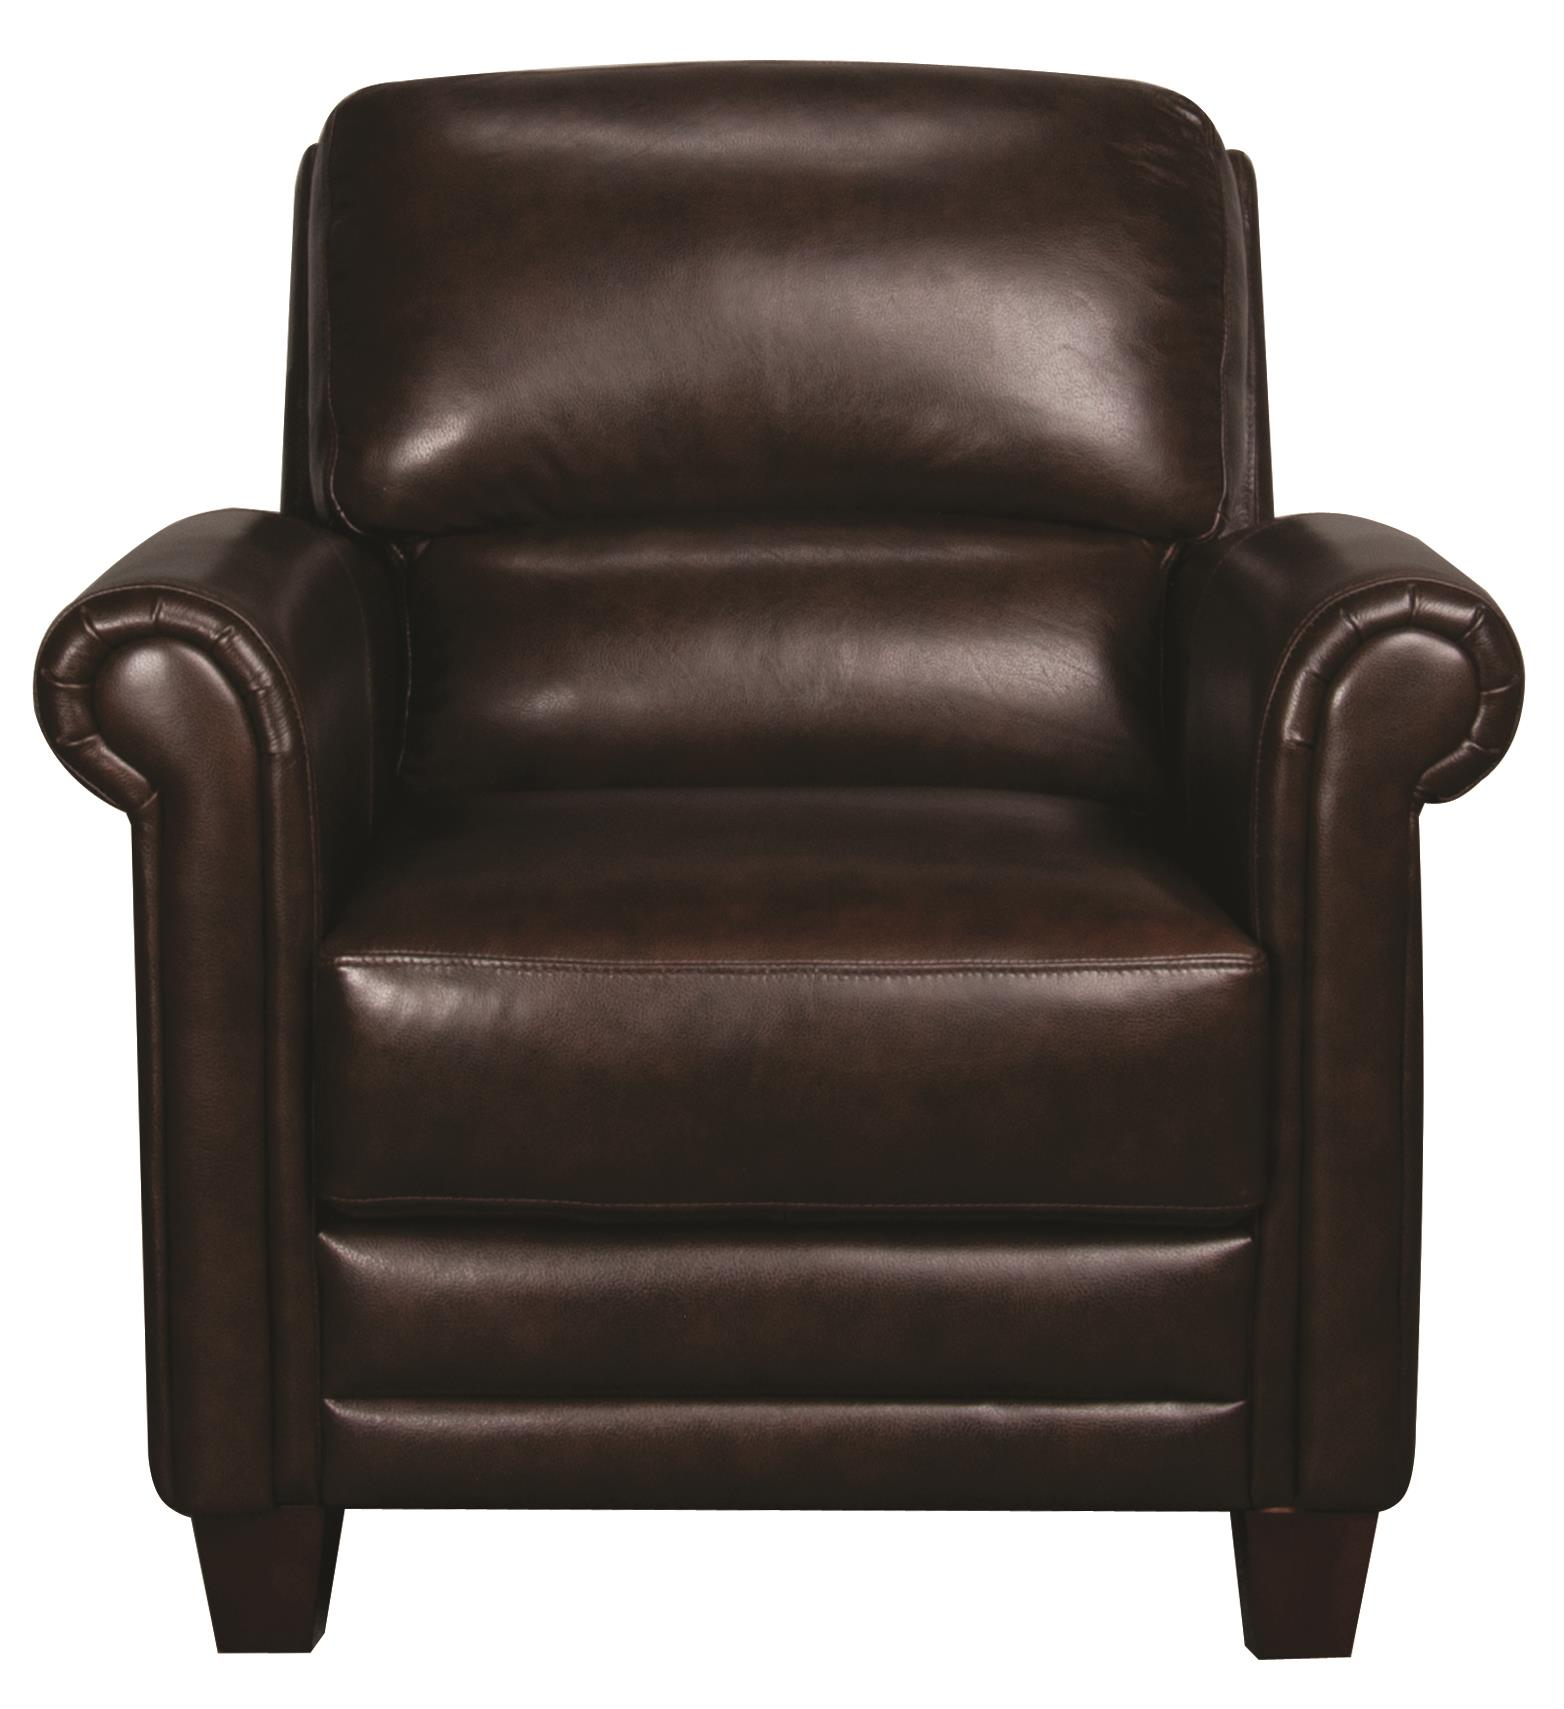 Morris Home Furnishings Victor Victor 100% Leather Chair - Item Number: 113807082